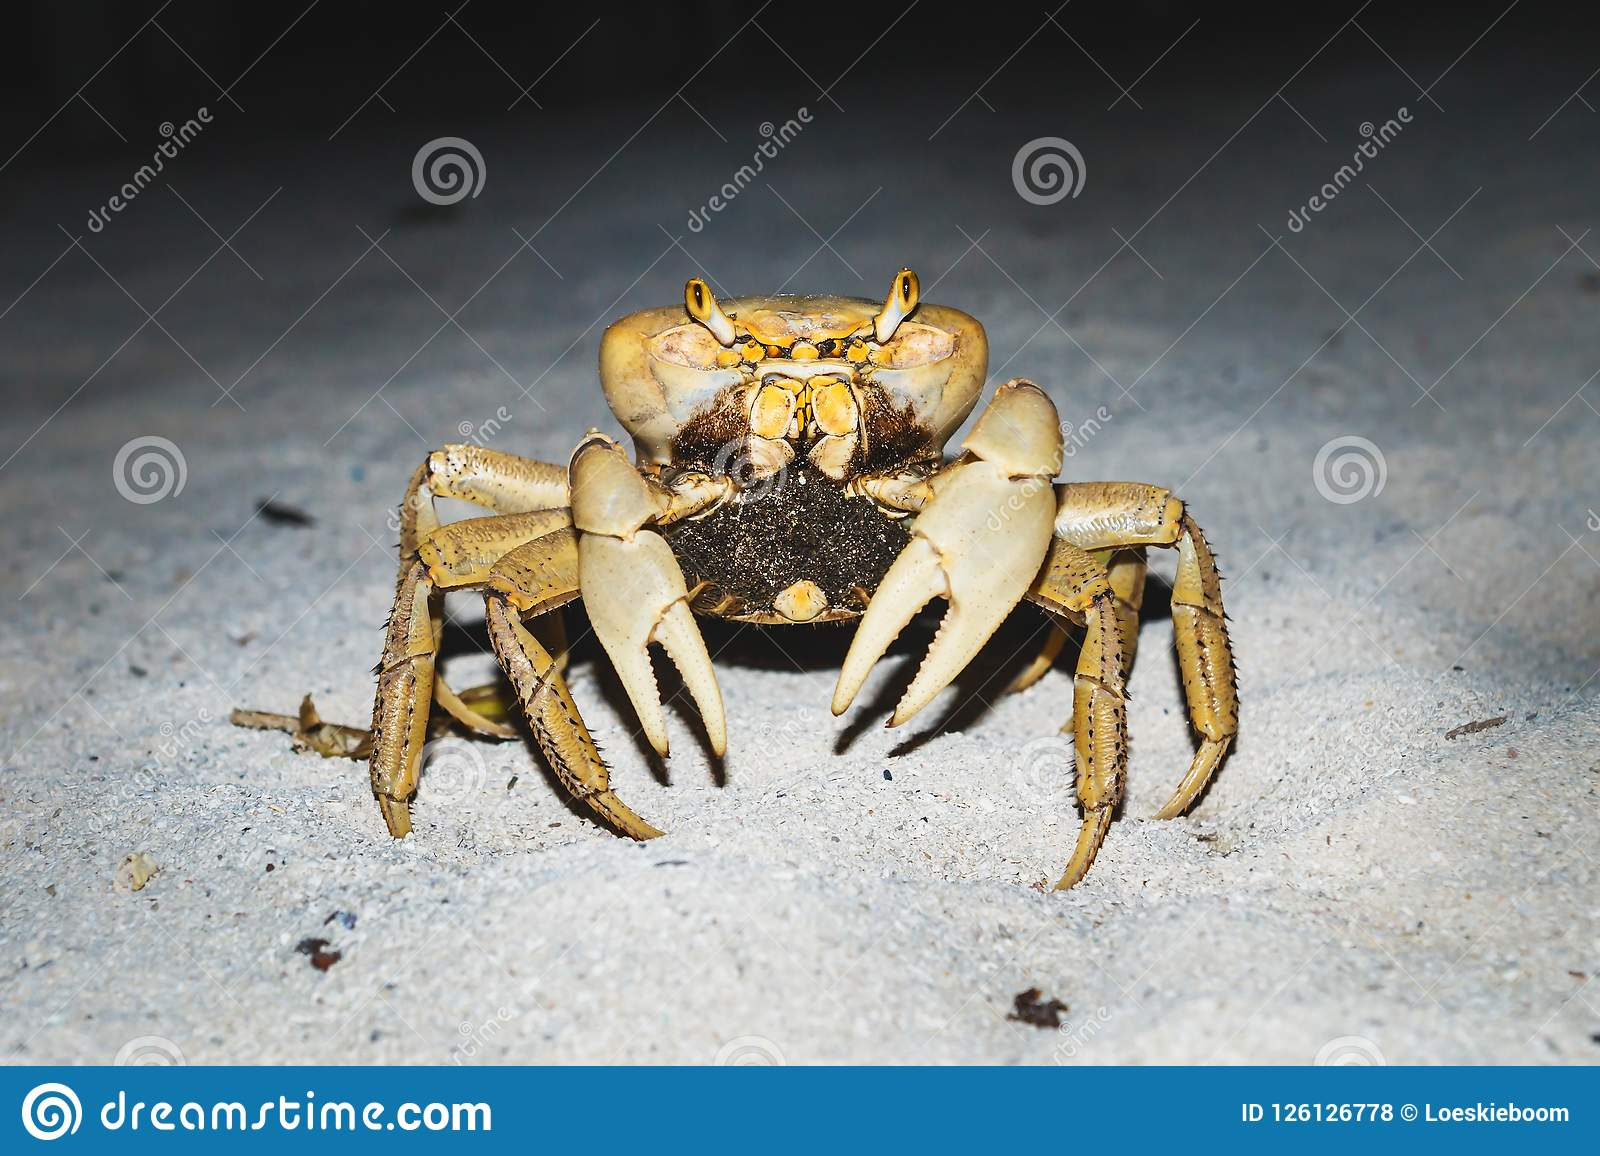 Large orange yellow crab in the night at the beach in Caye Caulker, Belize